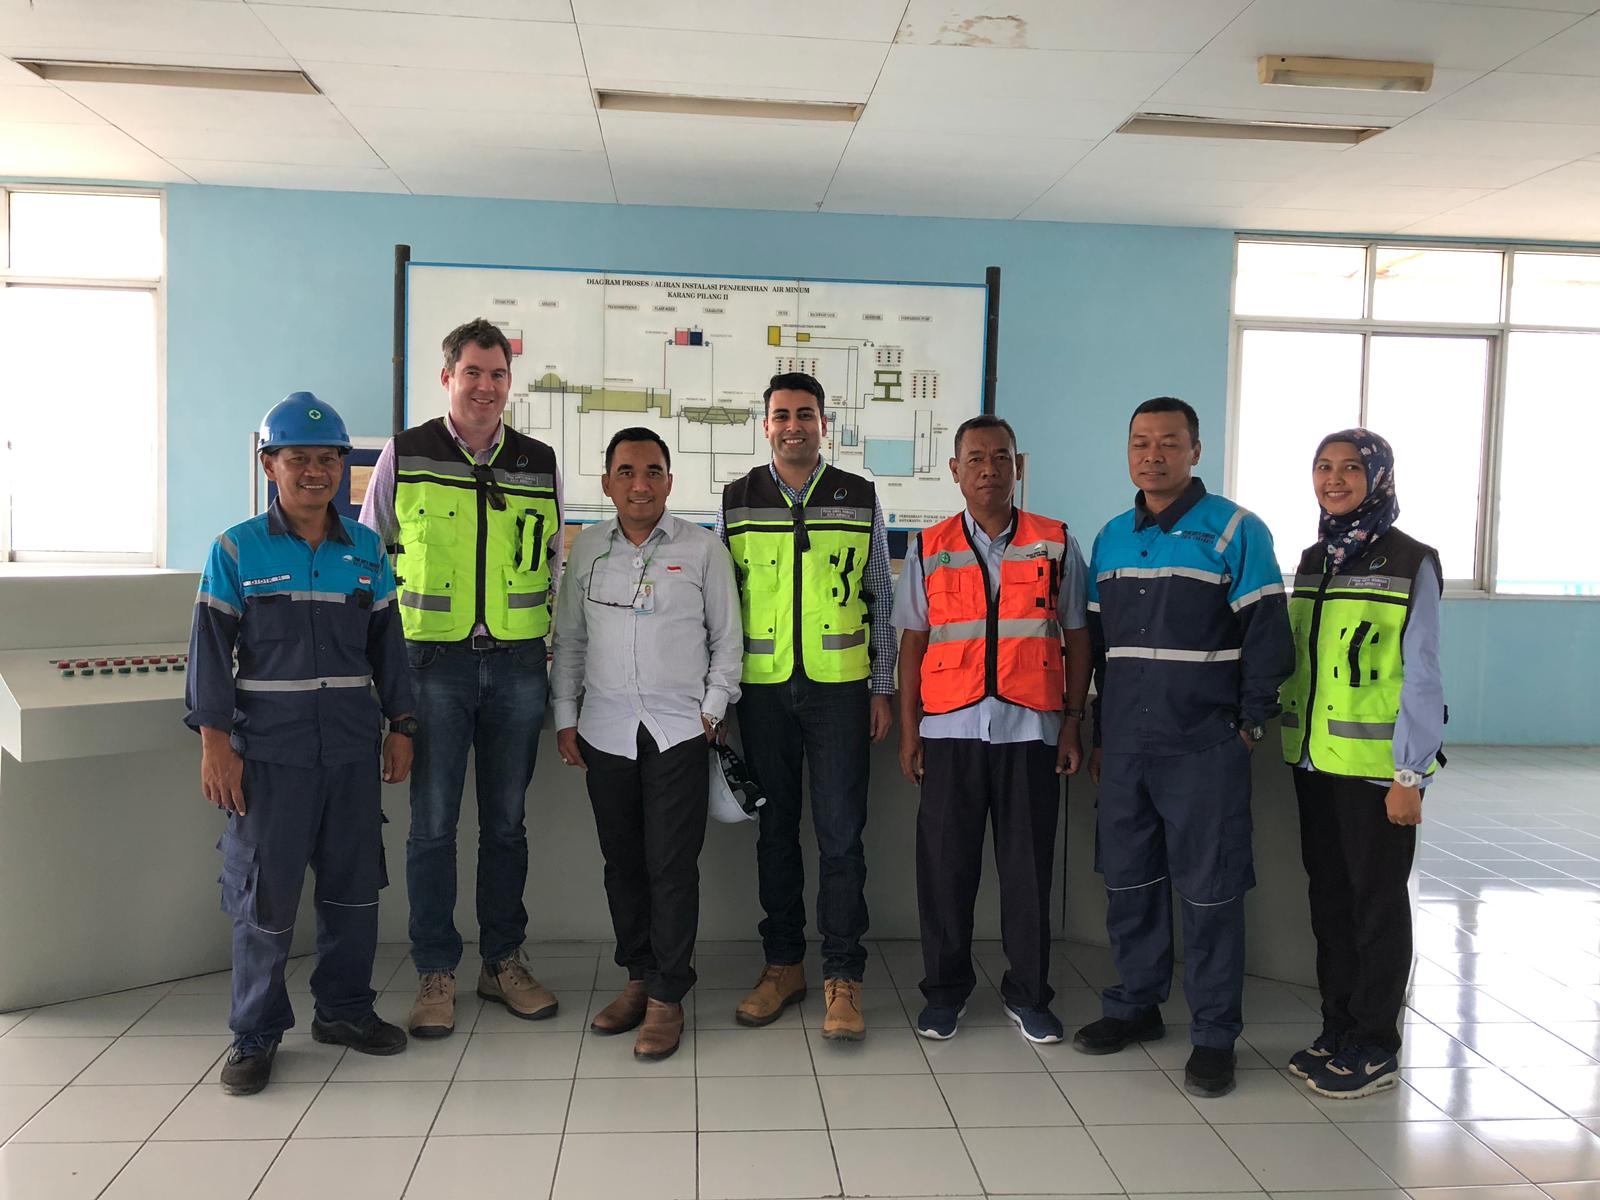 Unitywater visits PDAM Surabaya as part of the Indonesia-Australia Water Utility Improvement Program